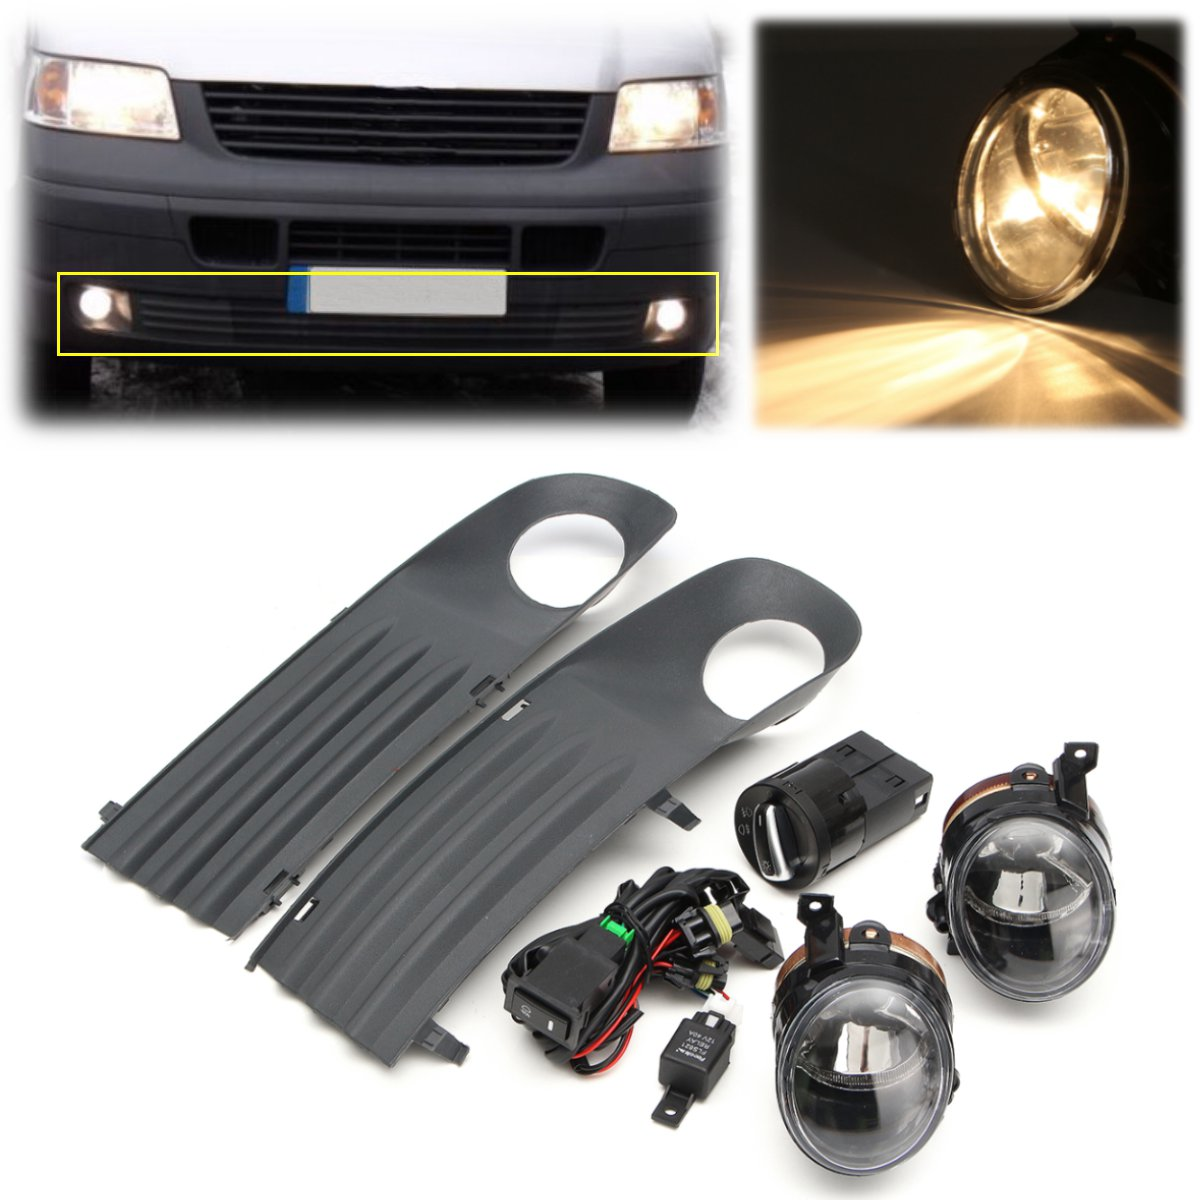 ФОТО 55W Front Left Right Foglight Grille Kit Set w/ Wiring Headlight Switch For VW T5 TRANSPORTER 2003-2010